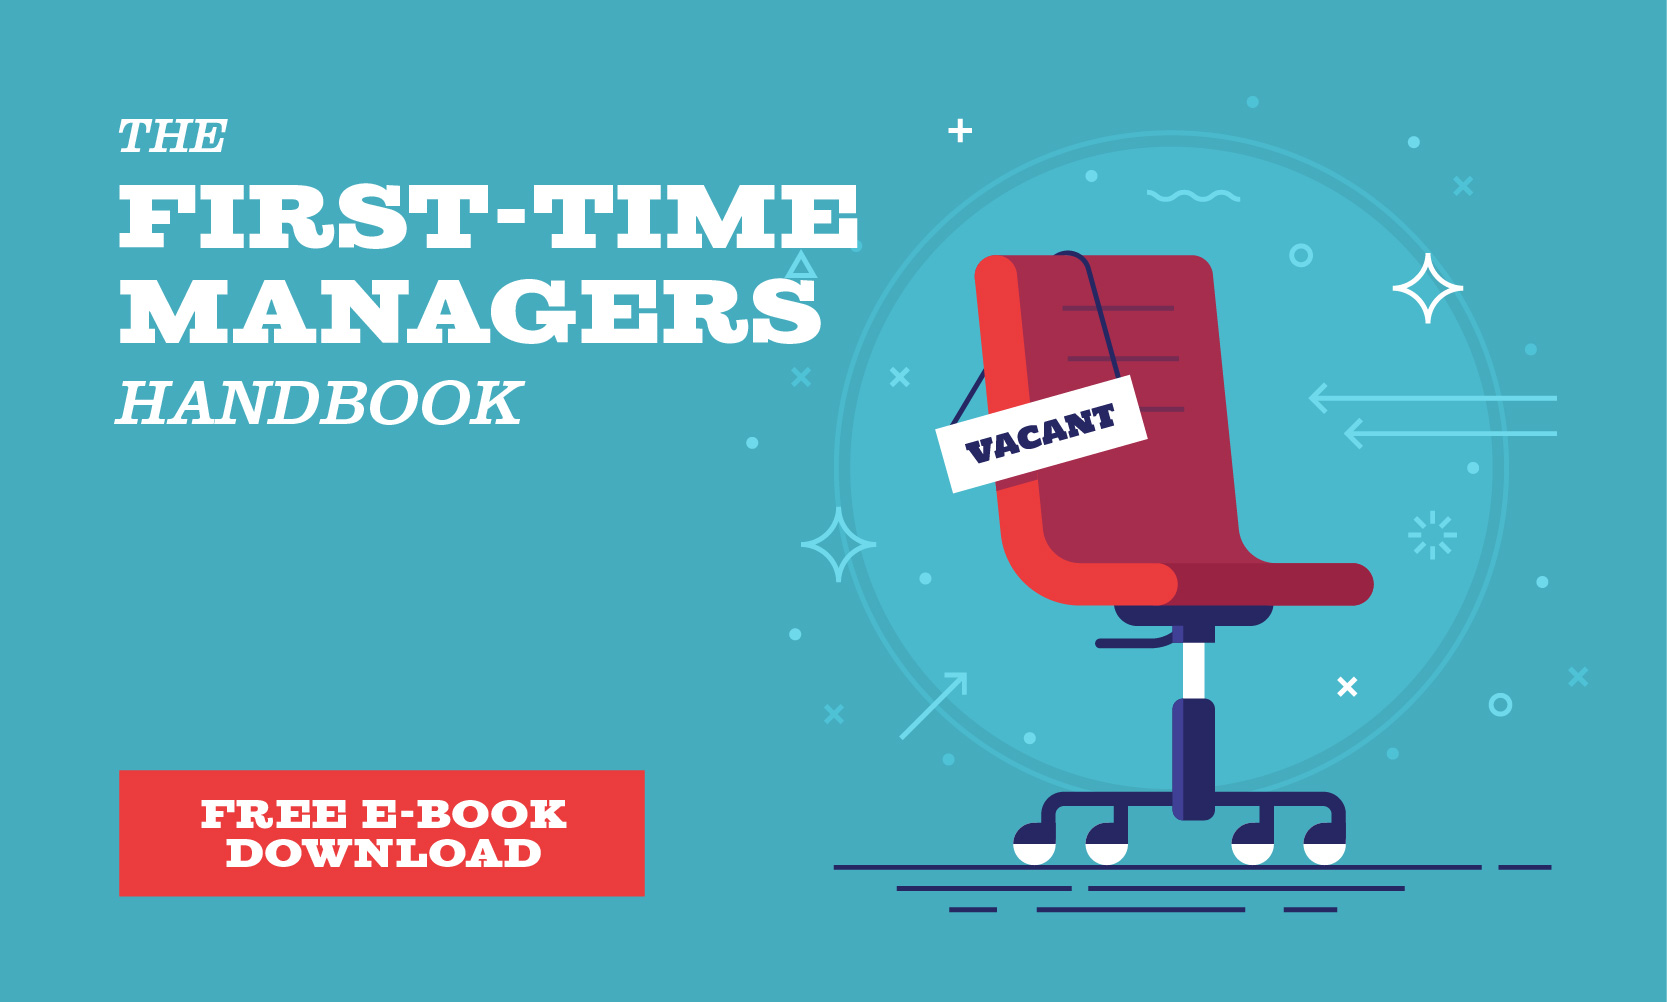 The First Time Managers Handbook - When I Work